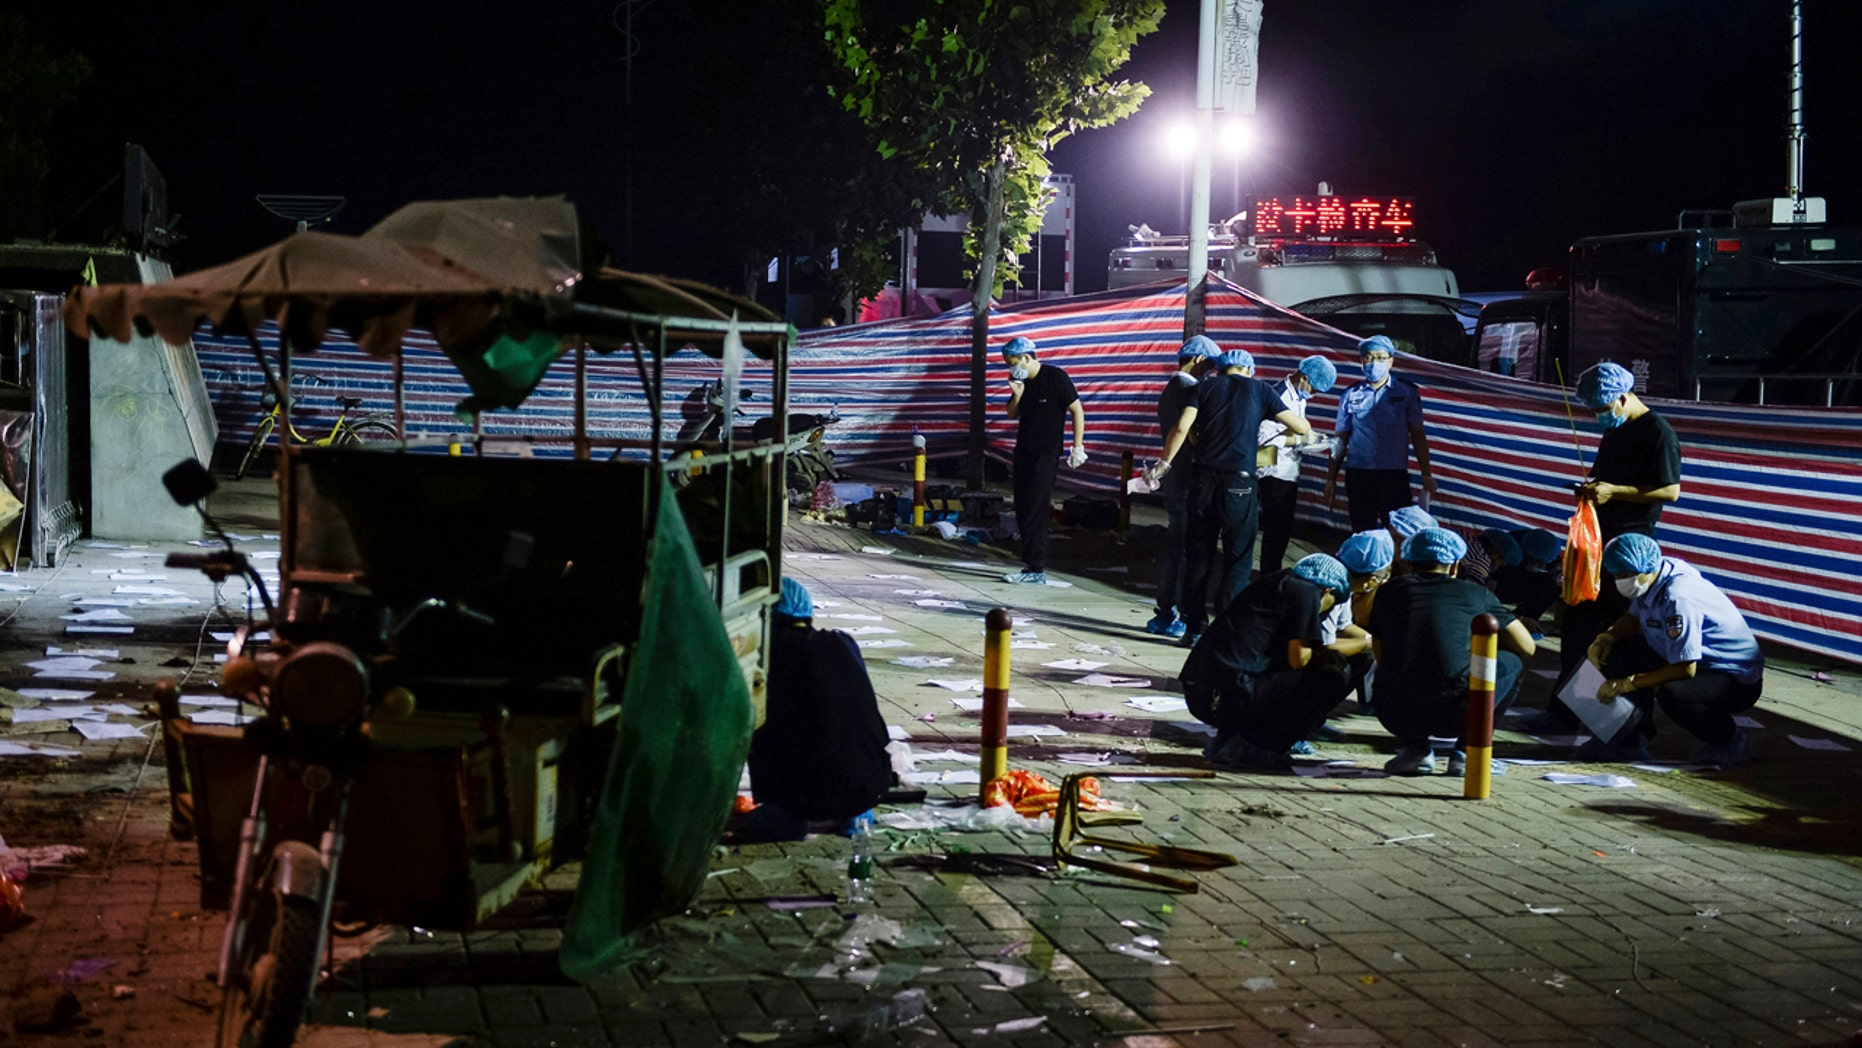 In this photo released by China's Xinhua News Agency, investigators work early Friday, June 16, 2017, at the scene of an explosion outside a kindergarten in Fengxian County in eastern China's Jiangsu Province.